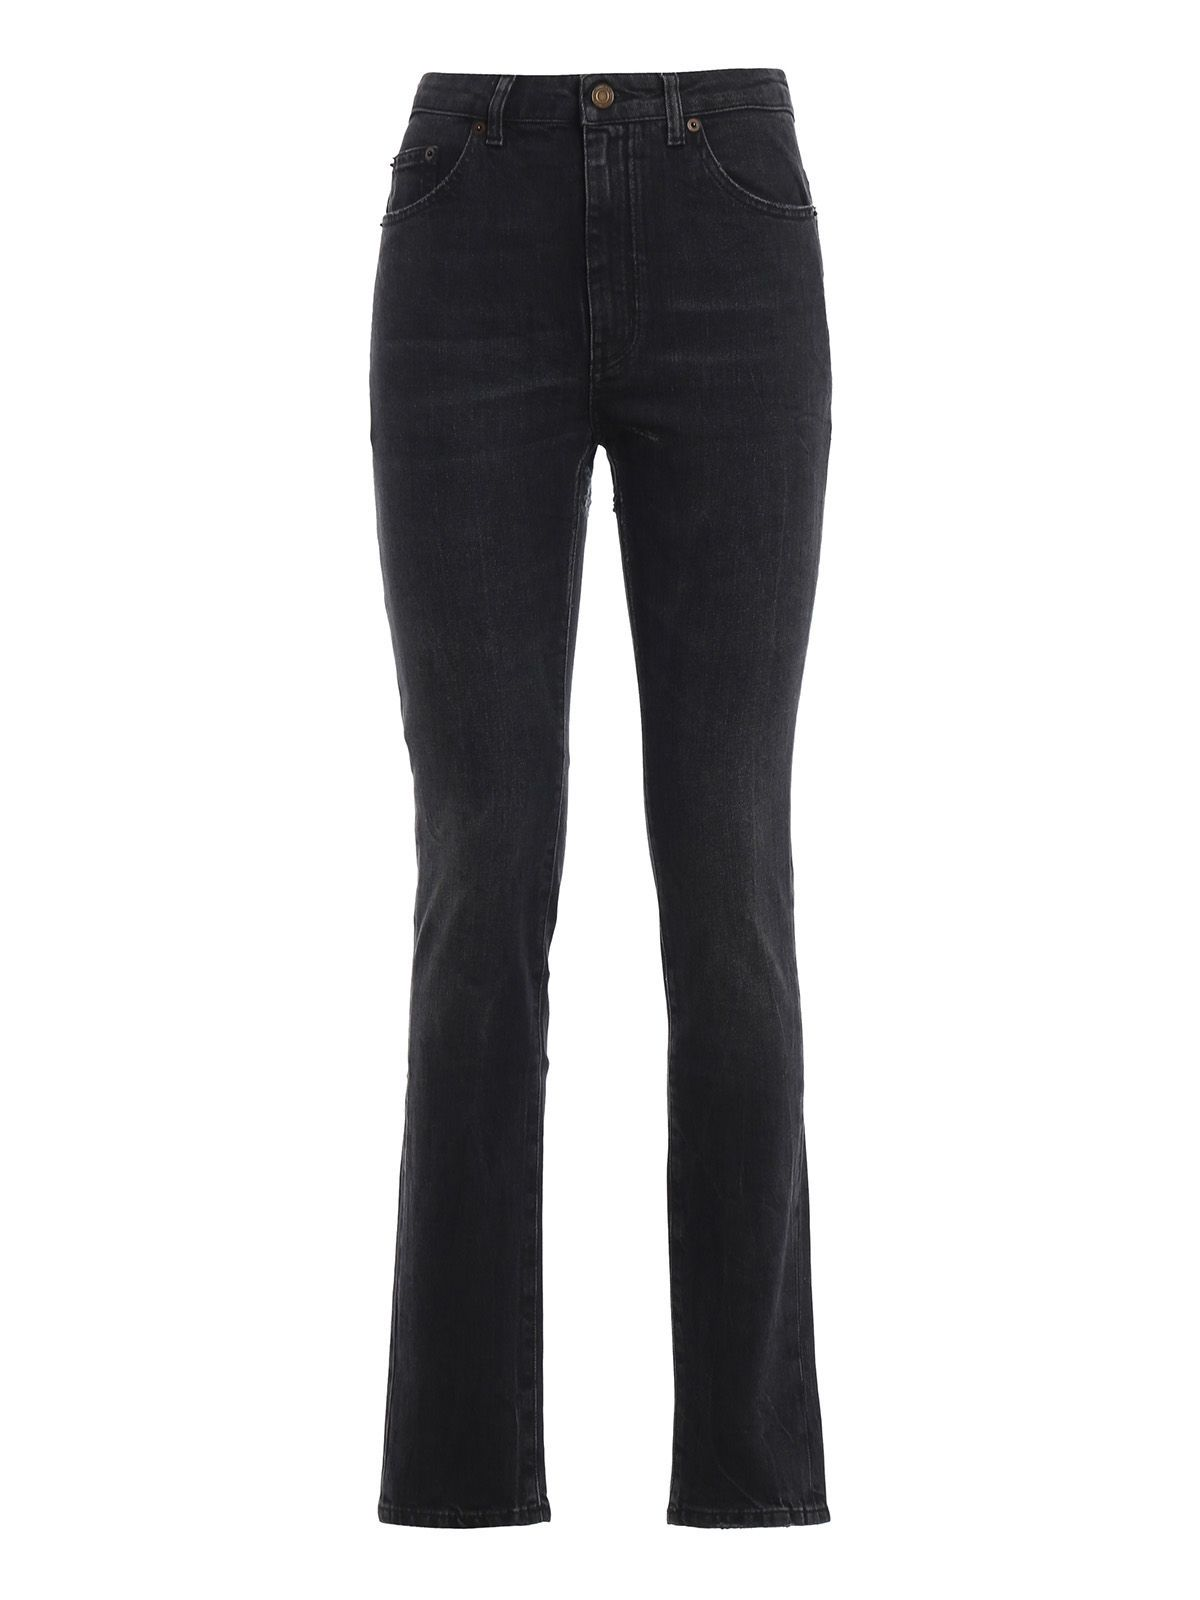 0c3a4c45073 Saint Laurent Saint Laurent High Rise Skinny Jeans - Vintage Dark ...